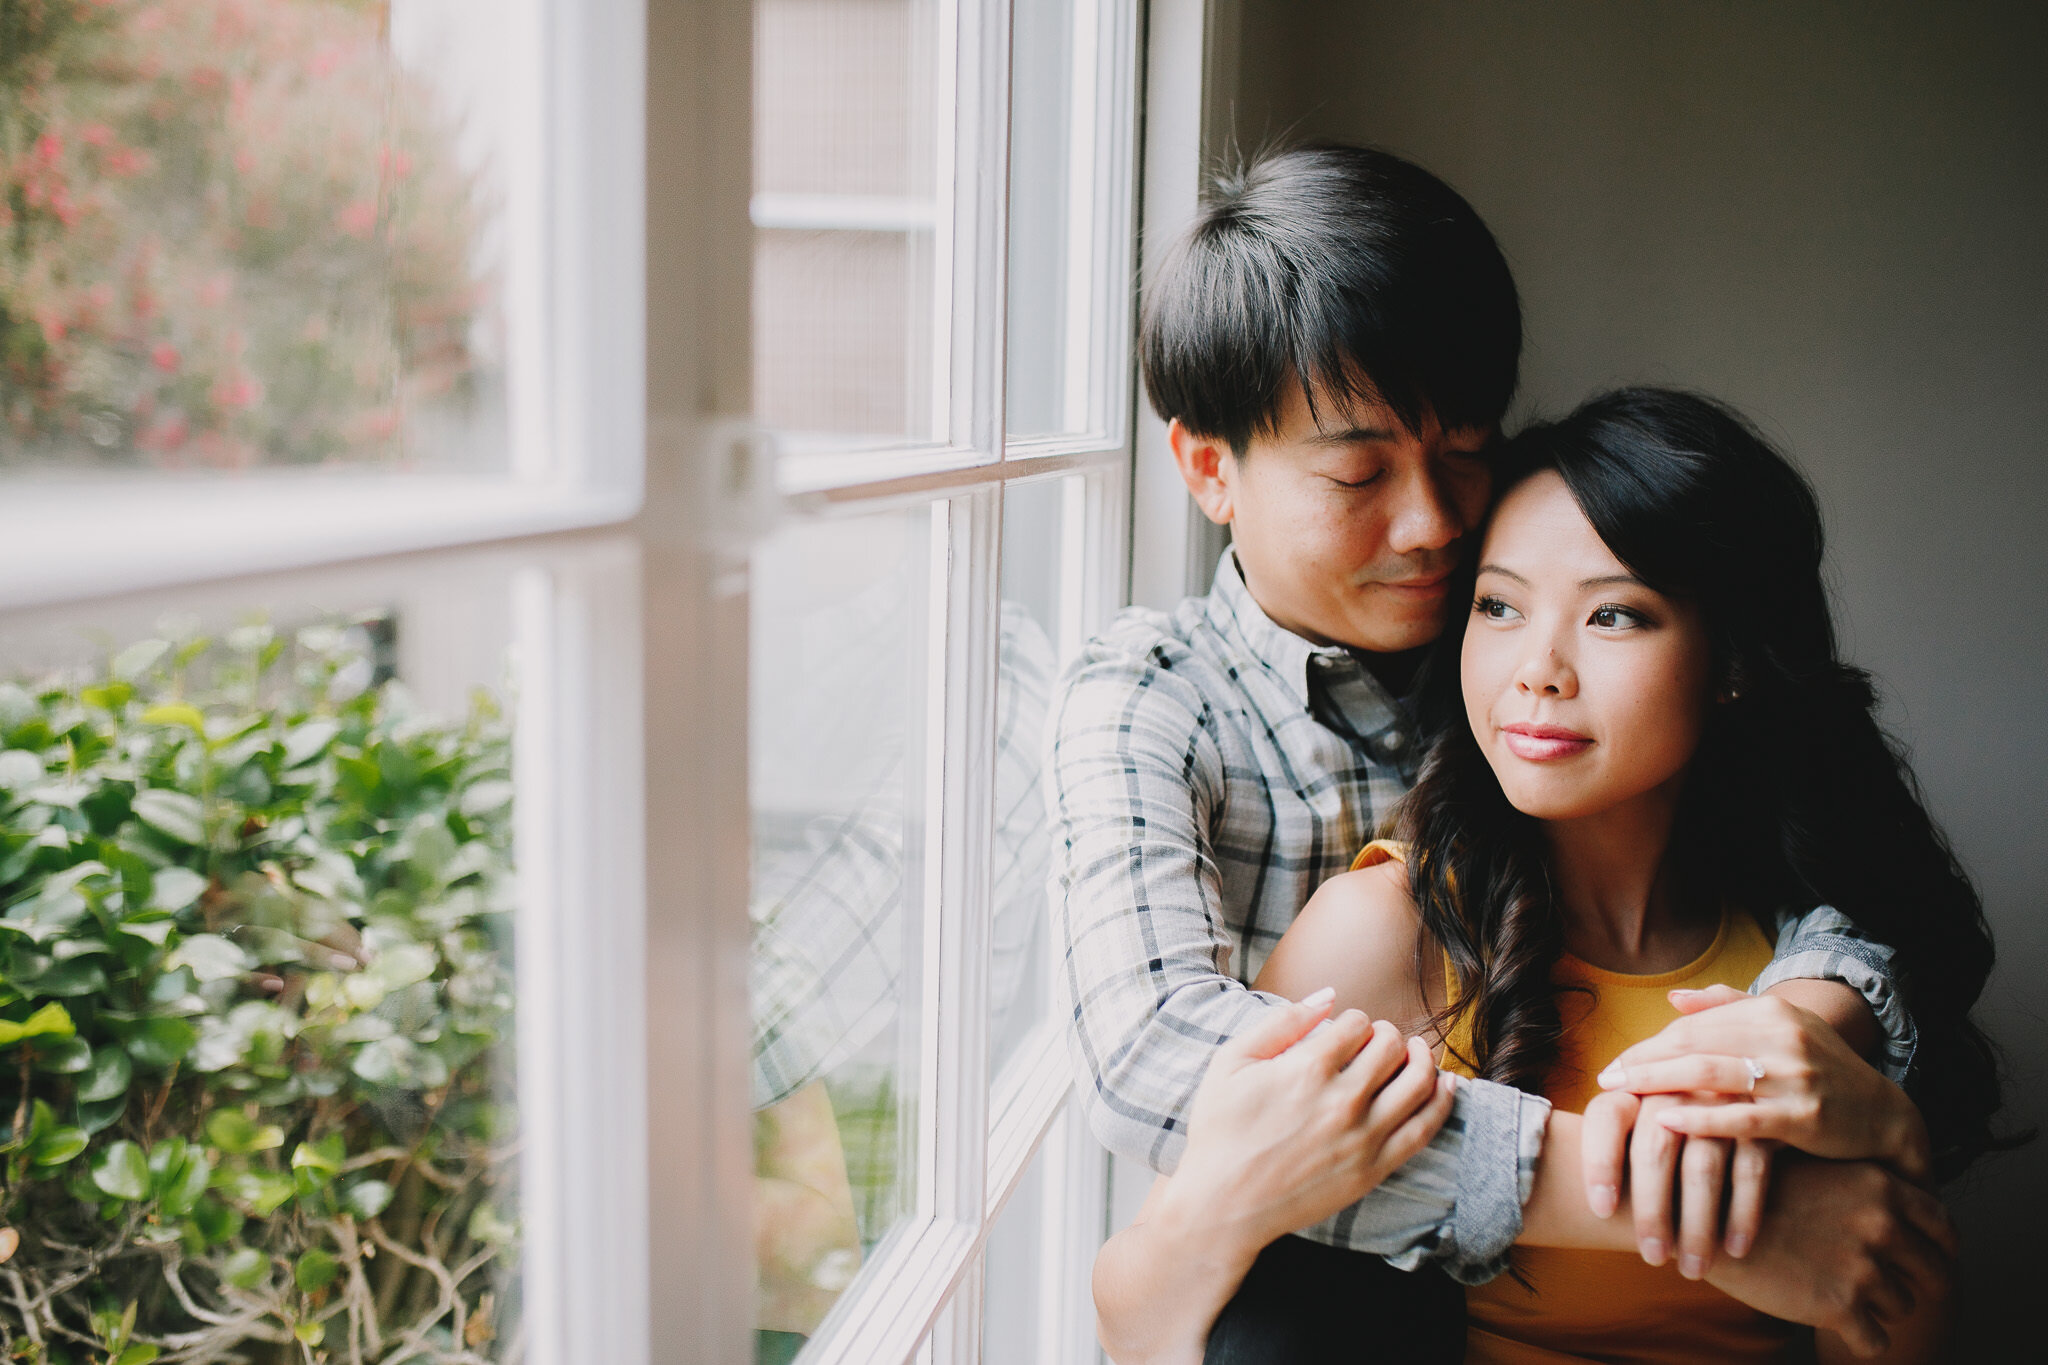 Archer Inspired Photography - San Leandro California Engagement Session - in Home Lifestyle - Pizza Parlor Date - SoCal Photographer-38.jpg